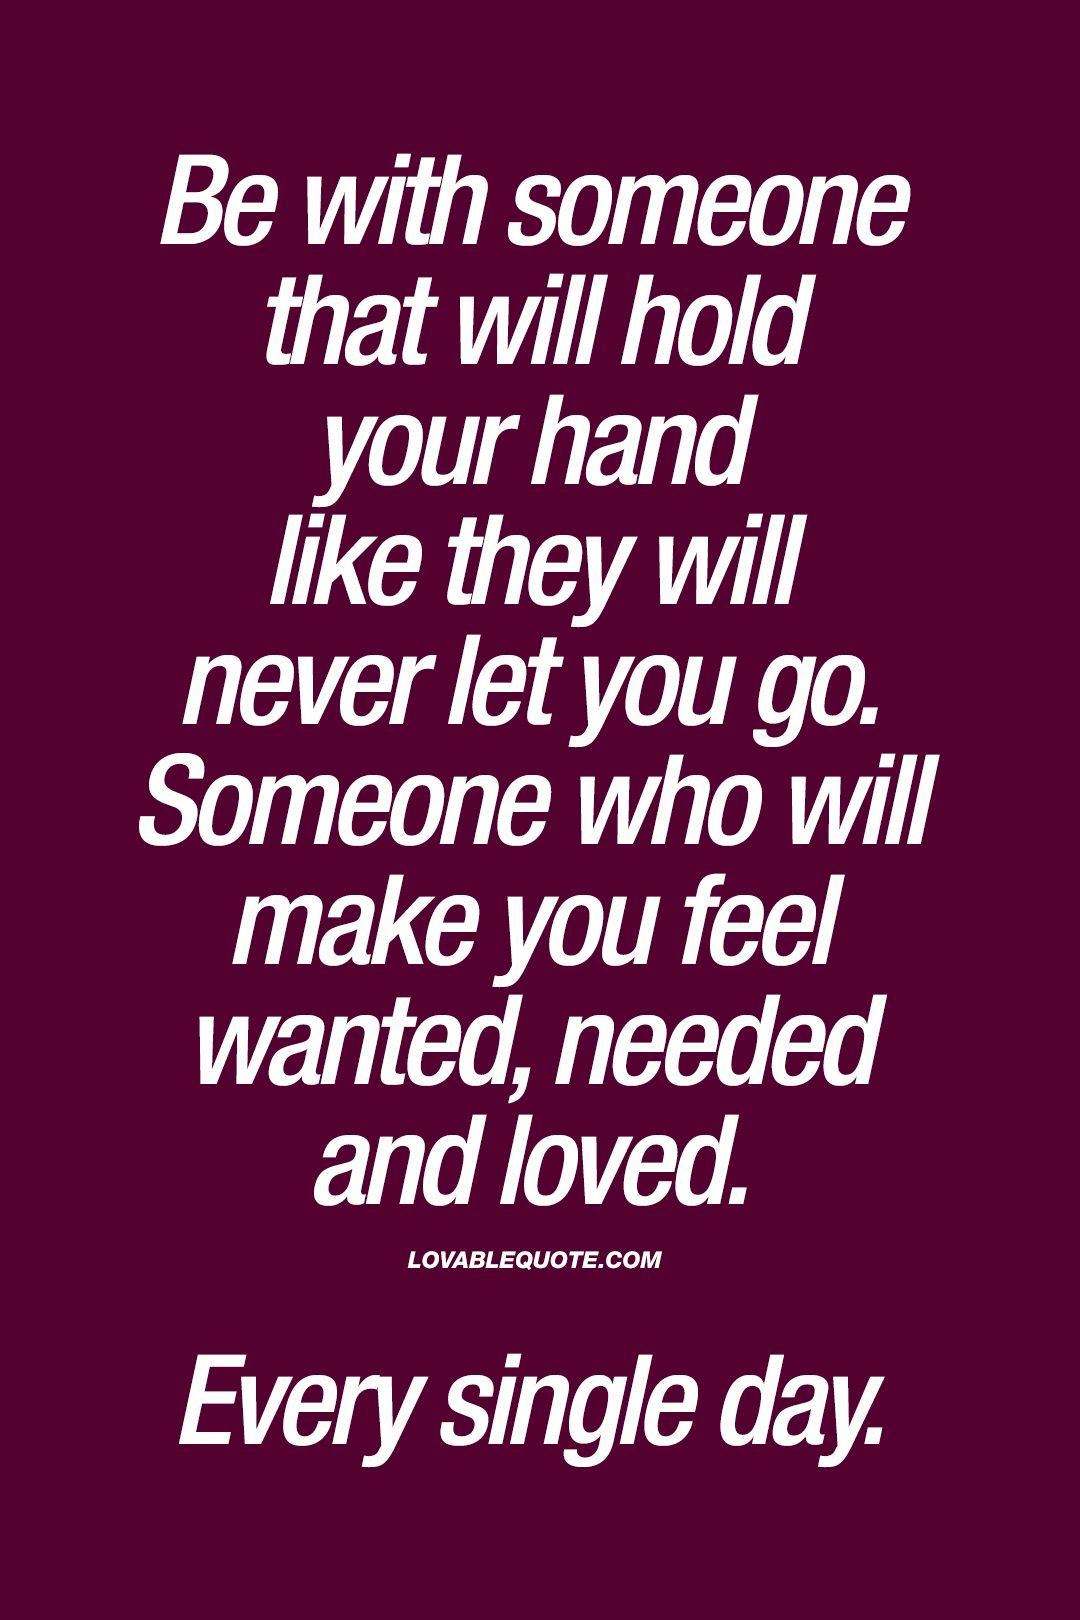 Be With Someone That Will Hold Your Hand Like They Will Never Let